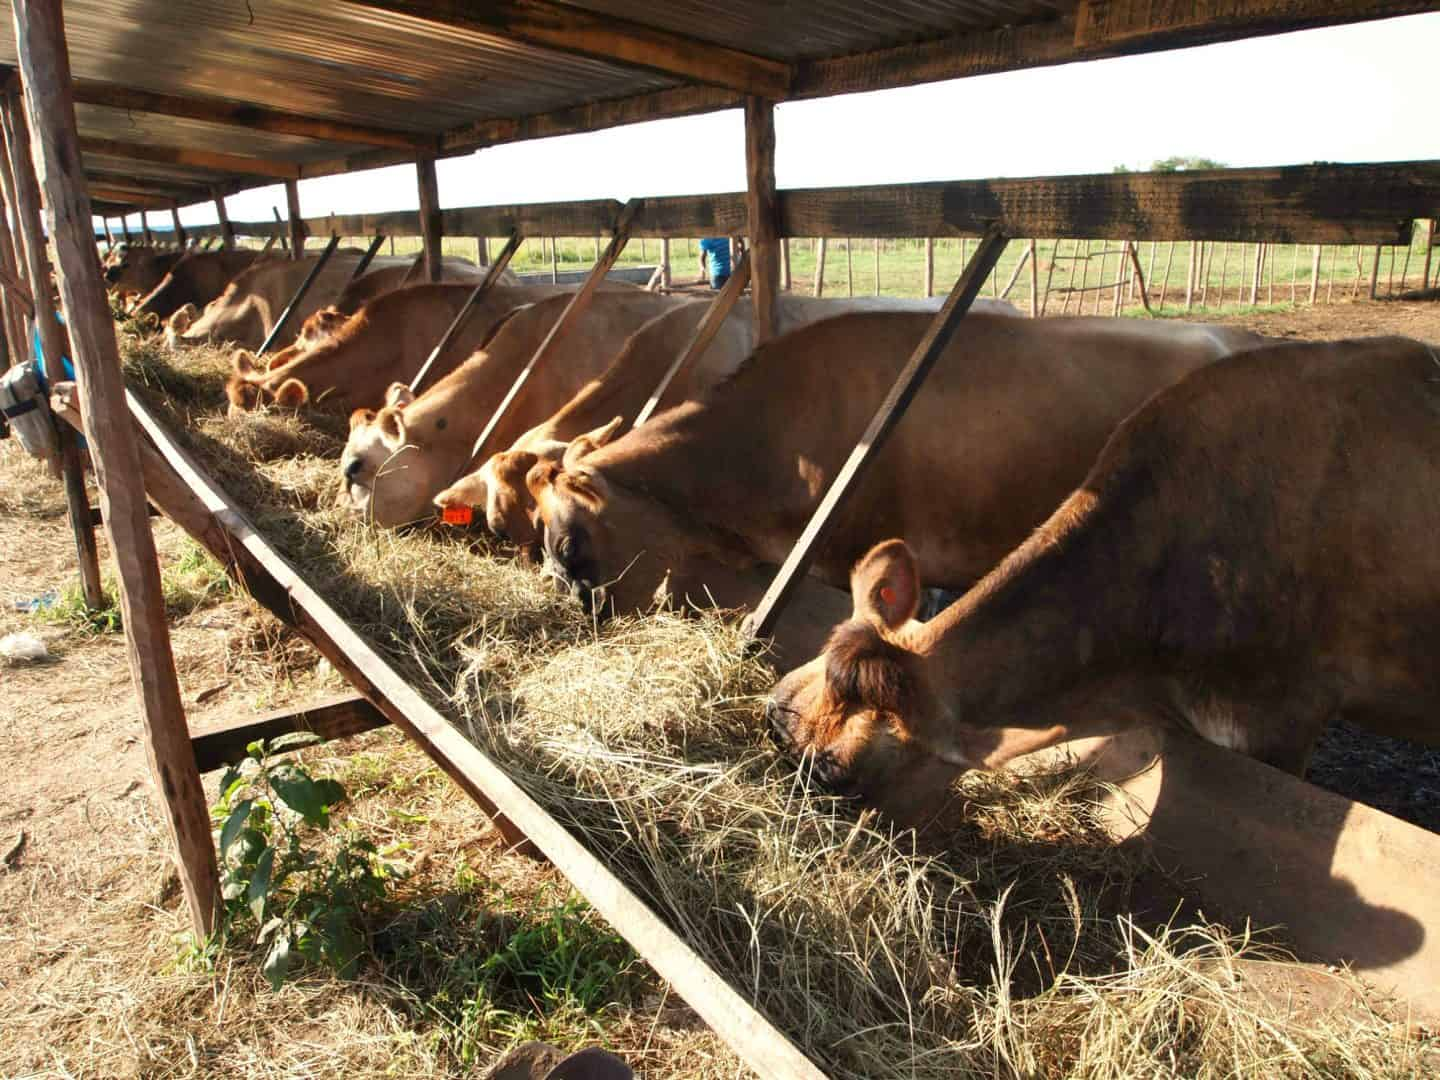 Global livestock antibiotic use expected to increase 67% by 2030